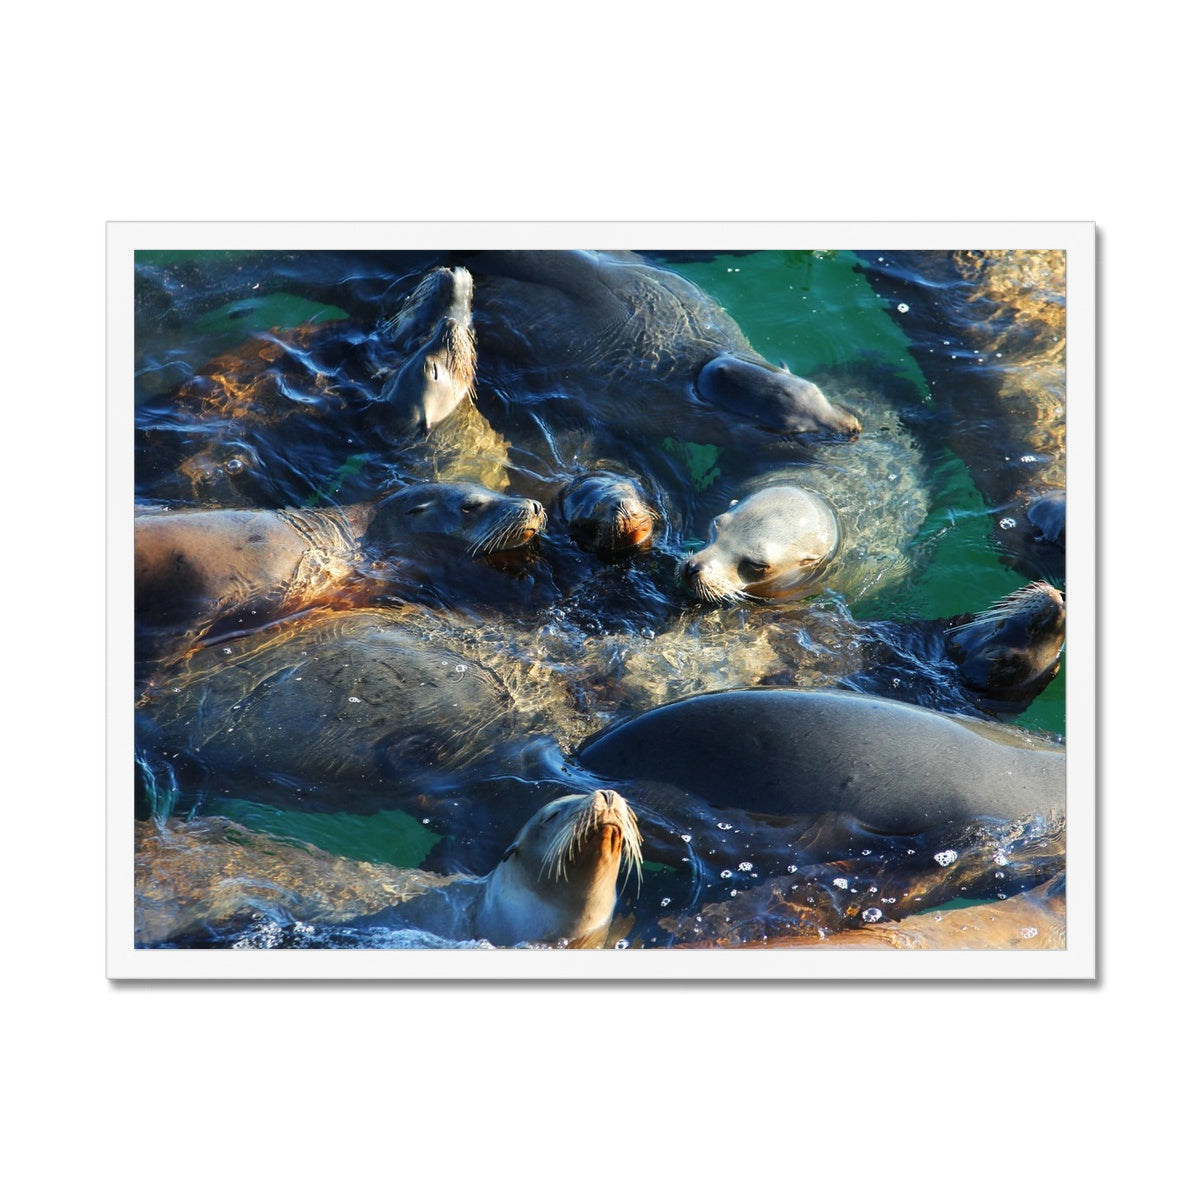 Seal Snuggles - California Framed Print